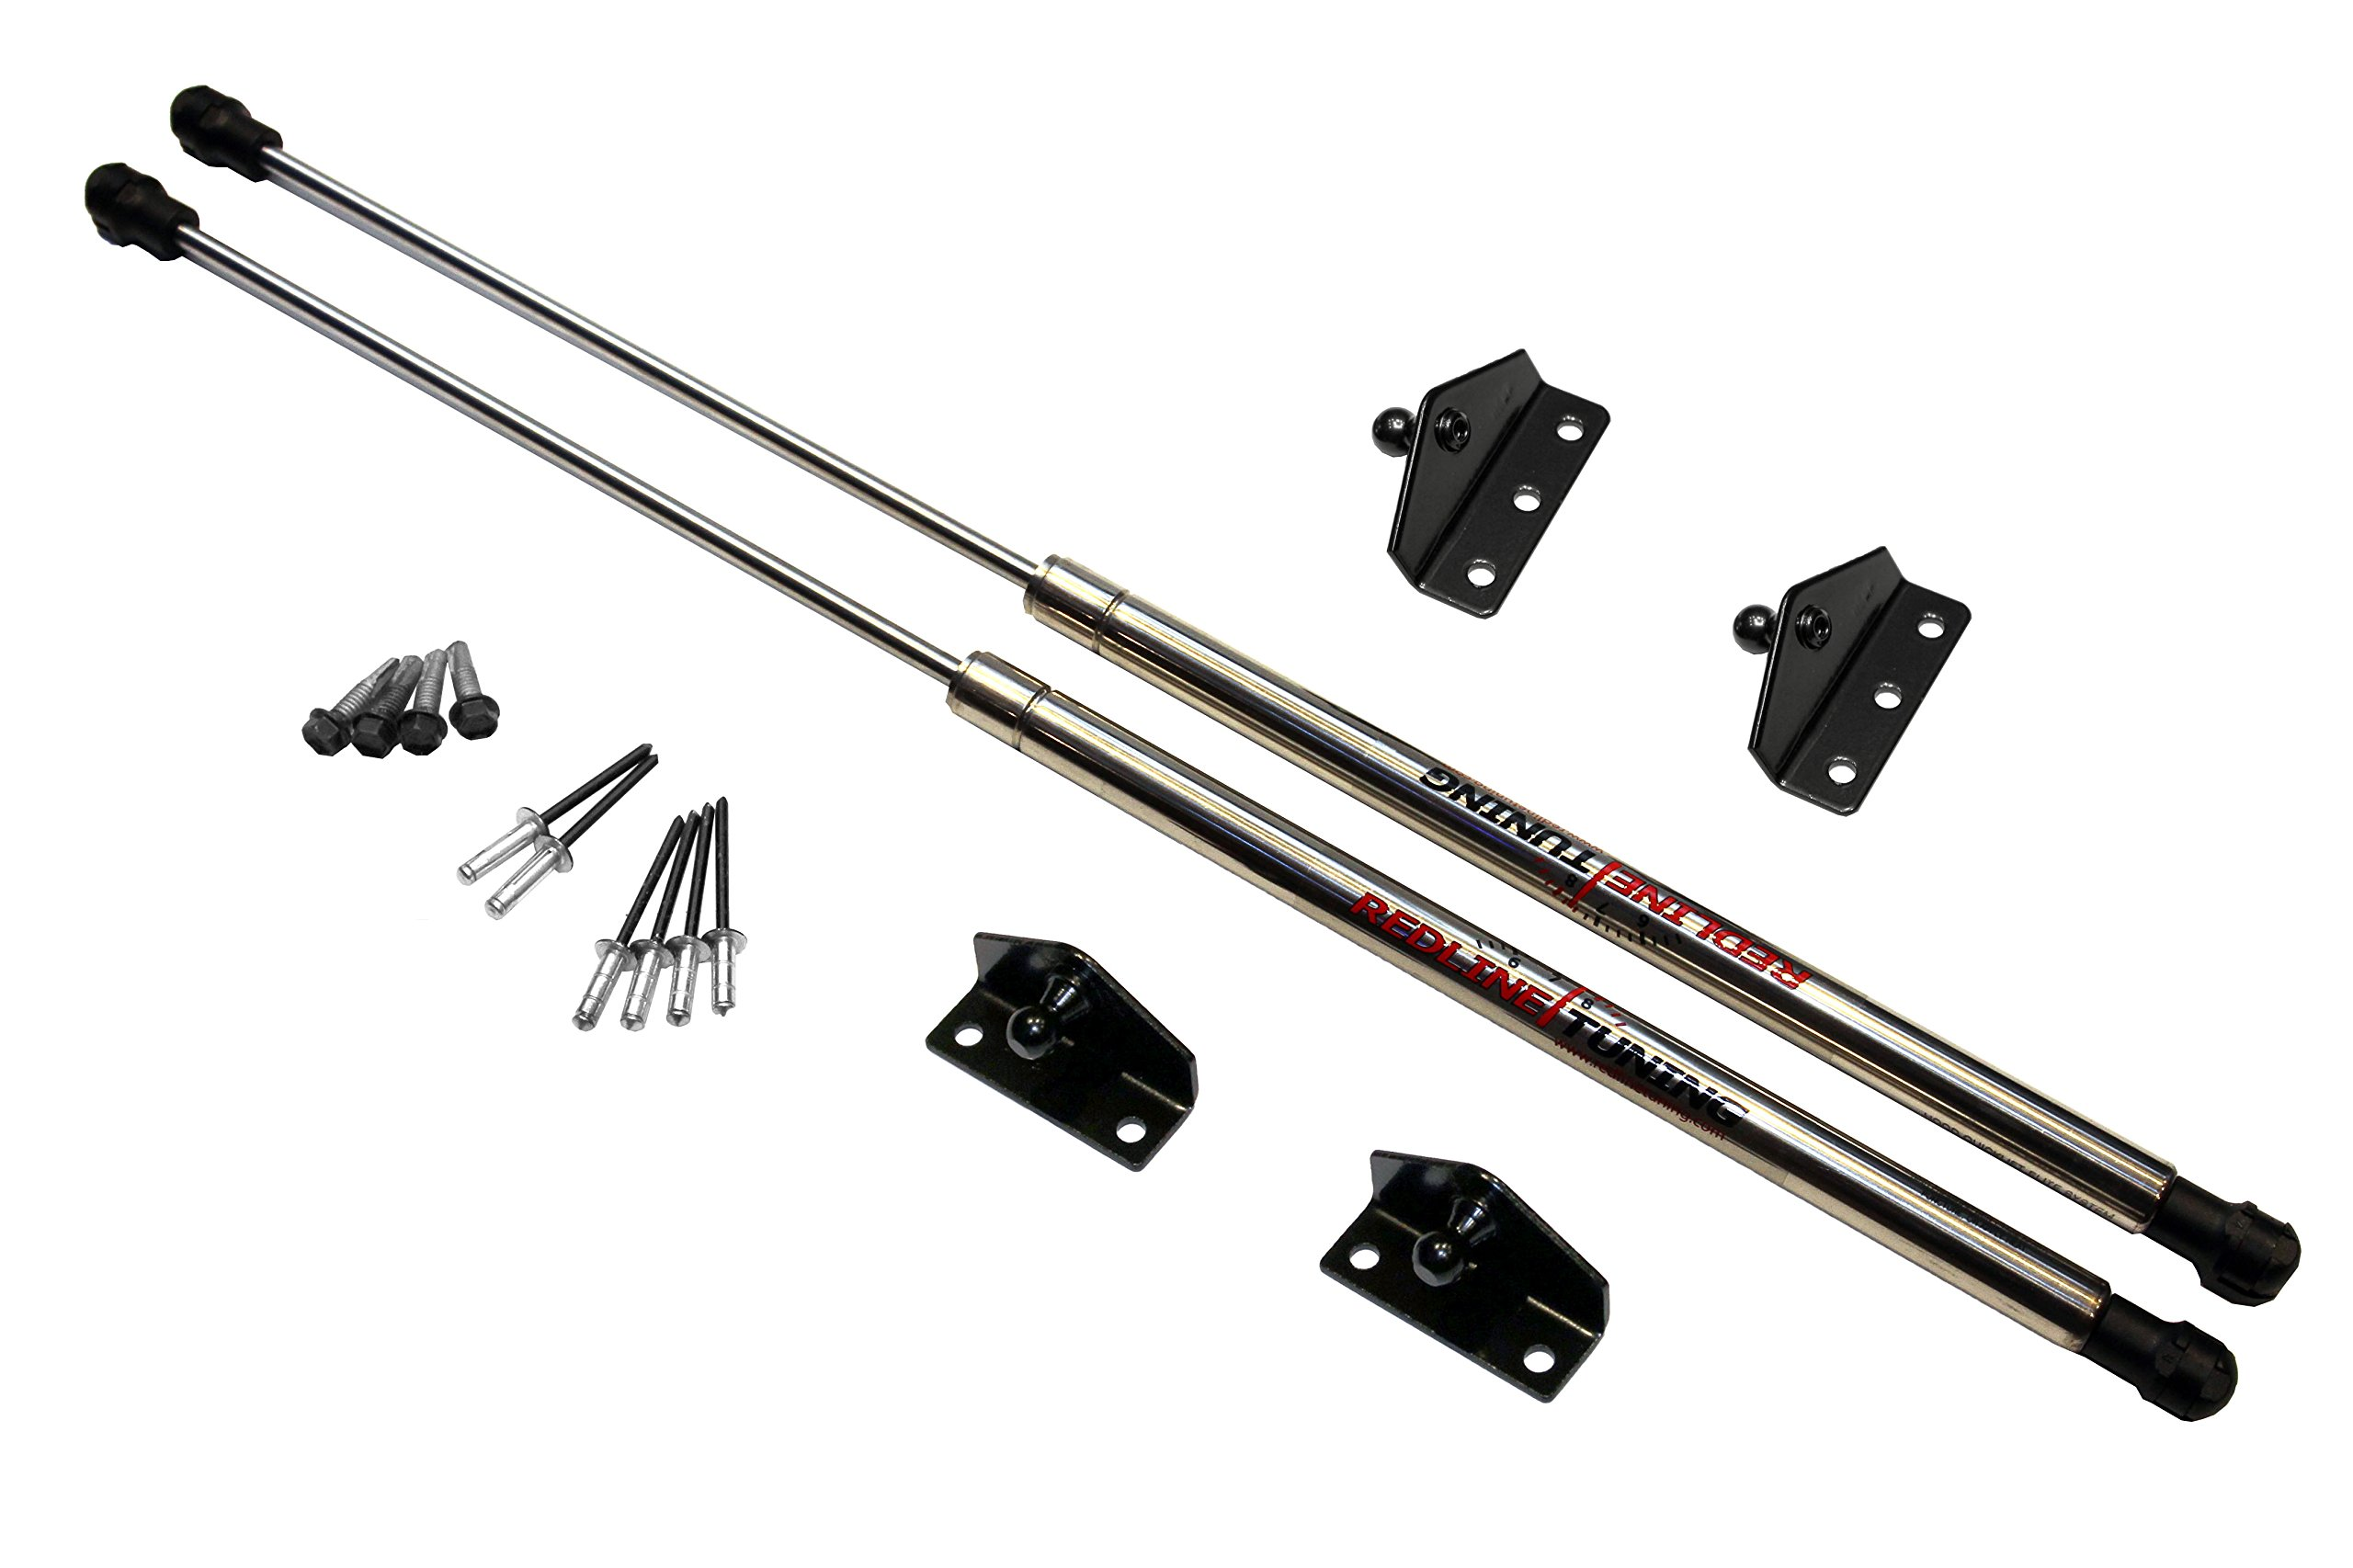 Redline Tuning 21-11020-03 Ford Ranger Hood QuickLIFT ELITE System - Struts Stainless Steel & Compatible With All Hoods